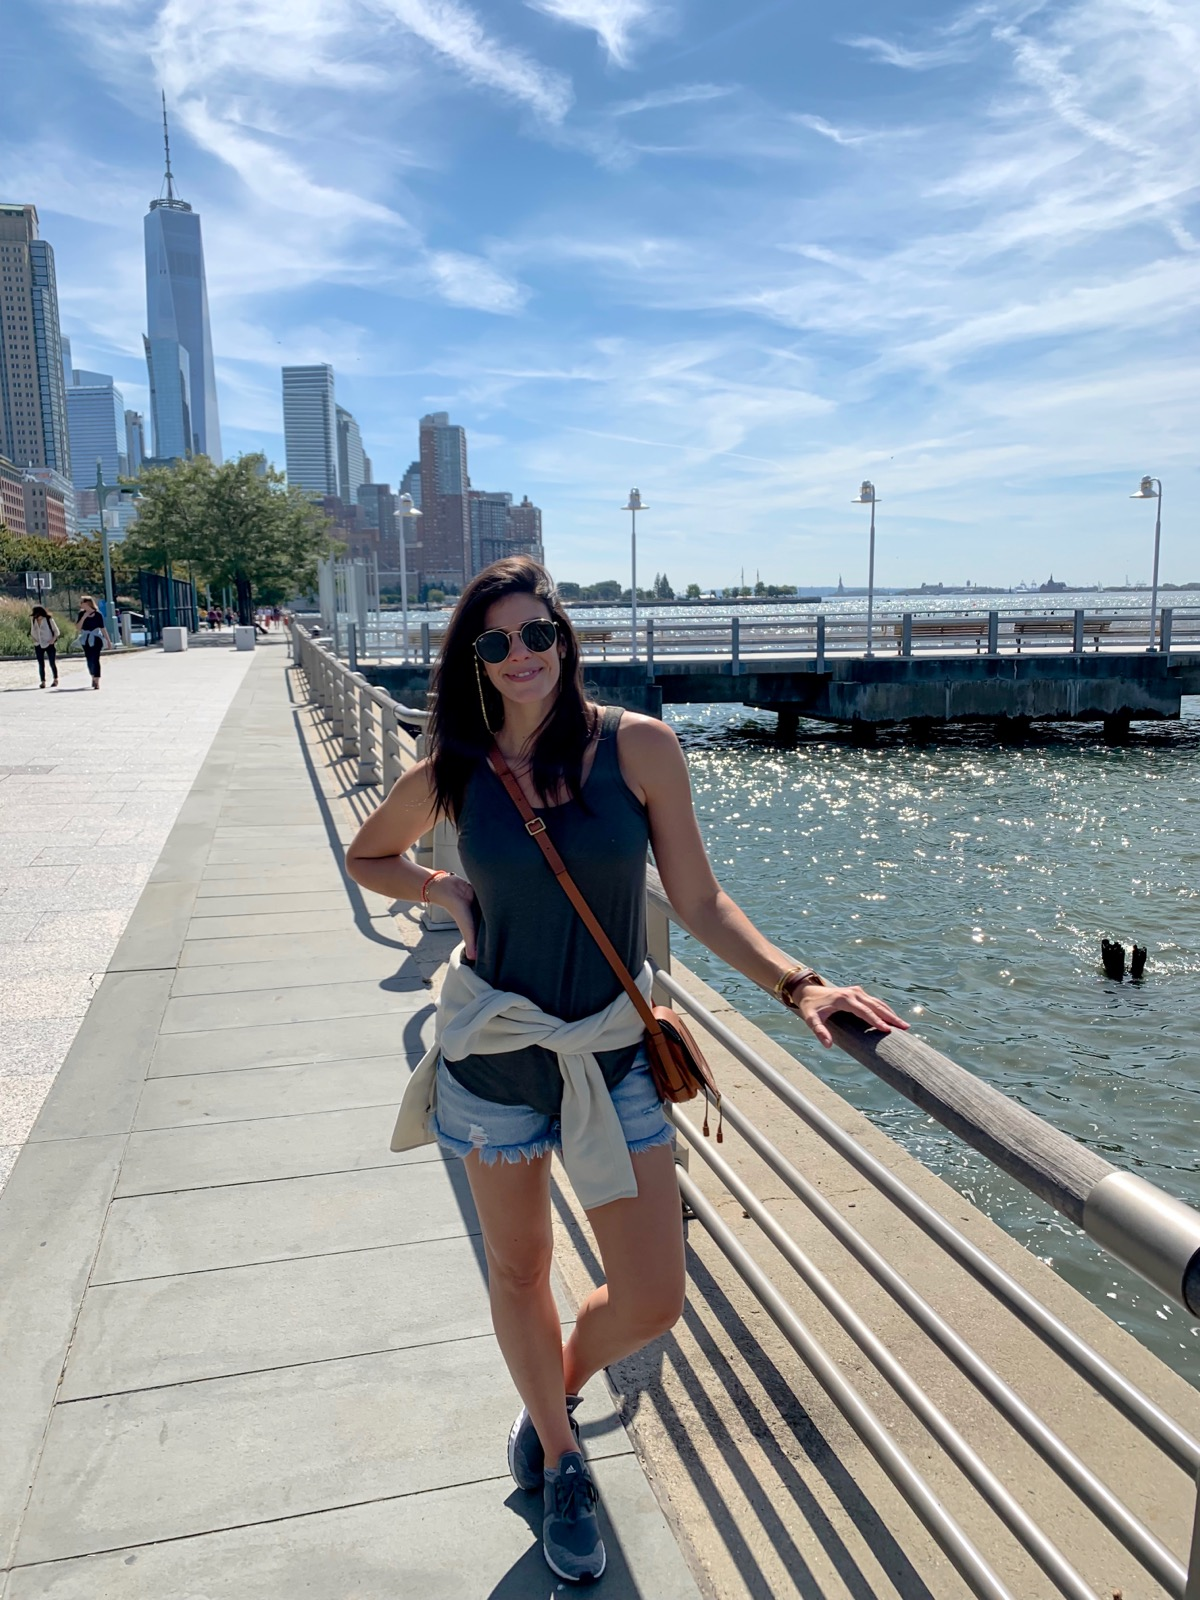 Hudson River Park - NYC Weekend - Lauren Schwaiger Travel Blog